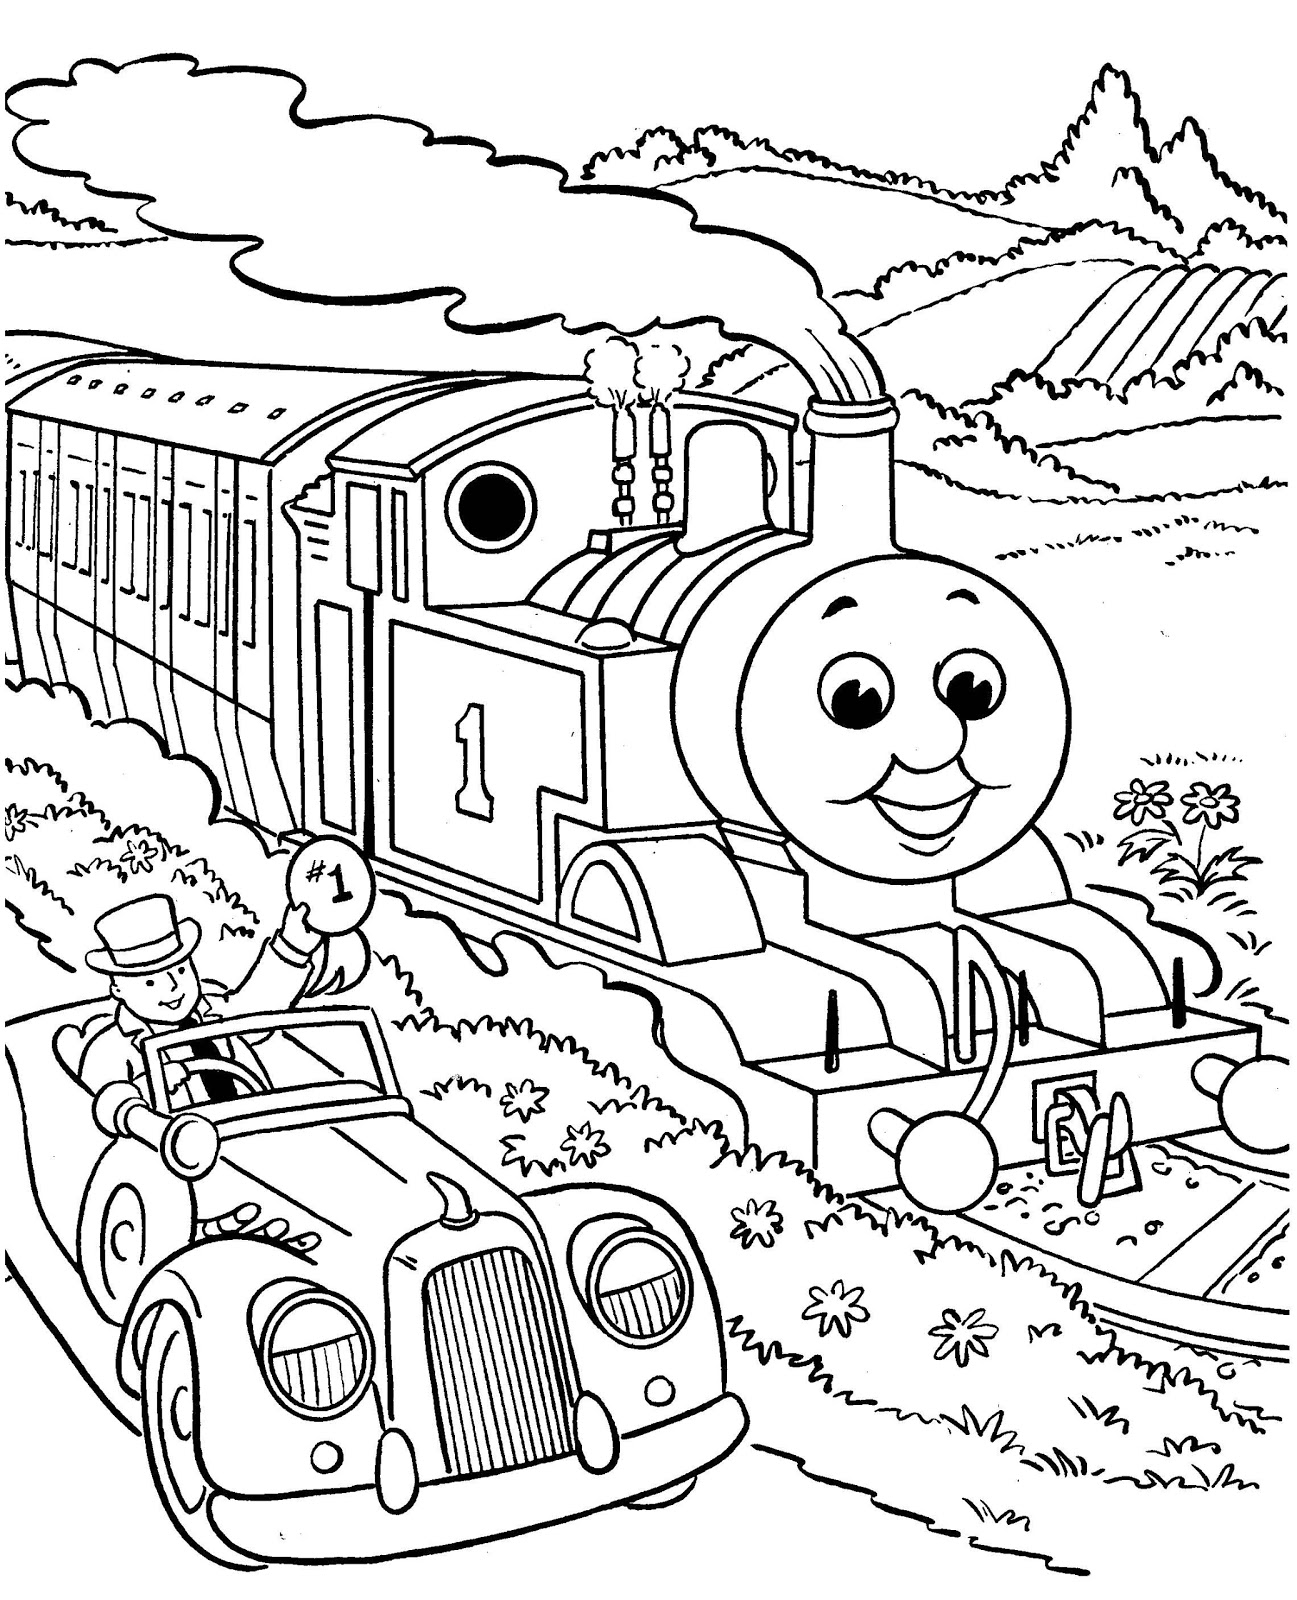 Colouring Pages for Kids from Activity Village - free printable coloring pages for boys